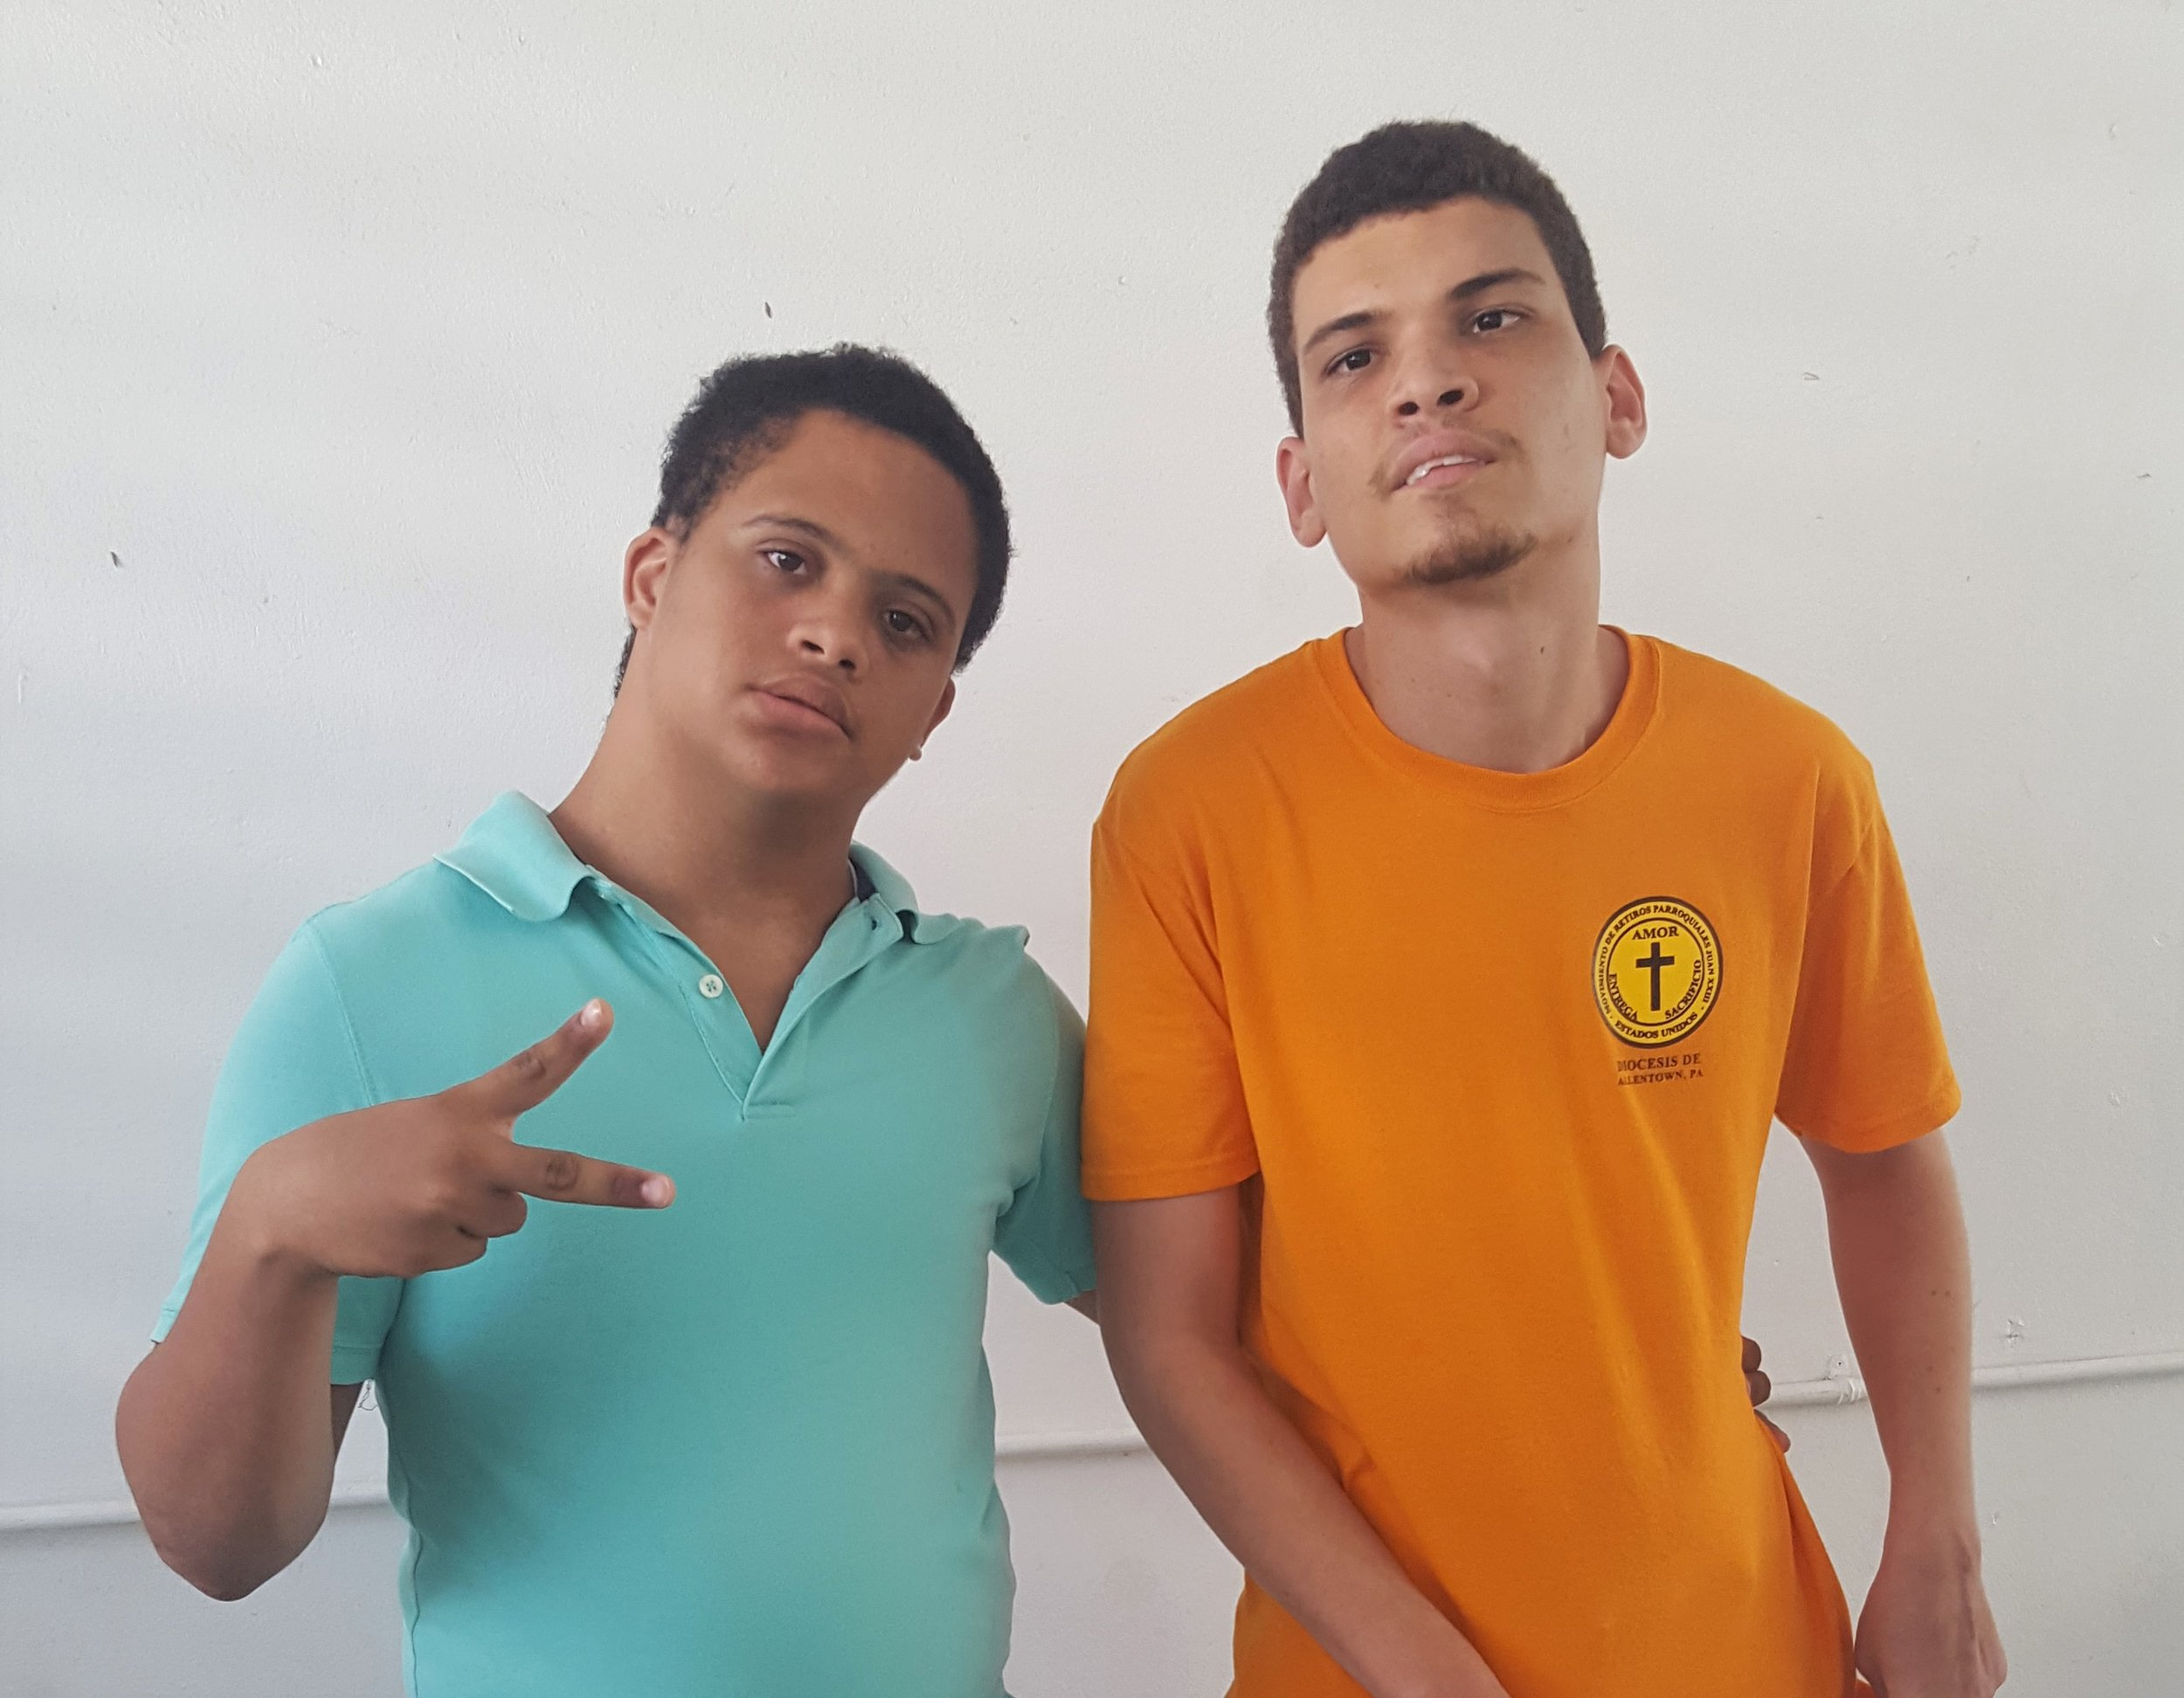 Nelbis and Cesar met in the adolescent program and quickly became best friends.